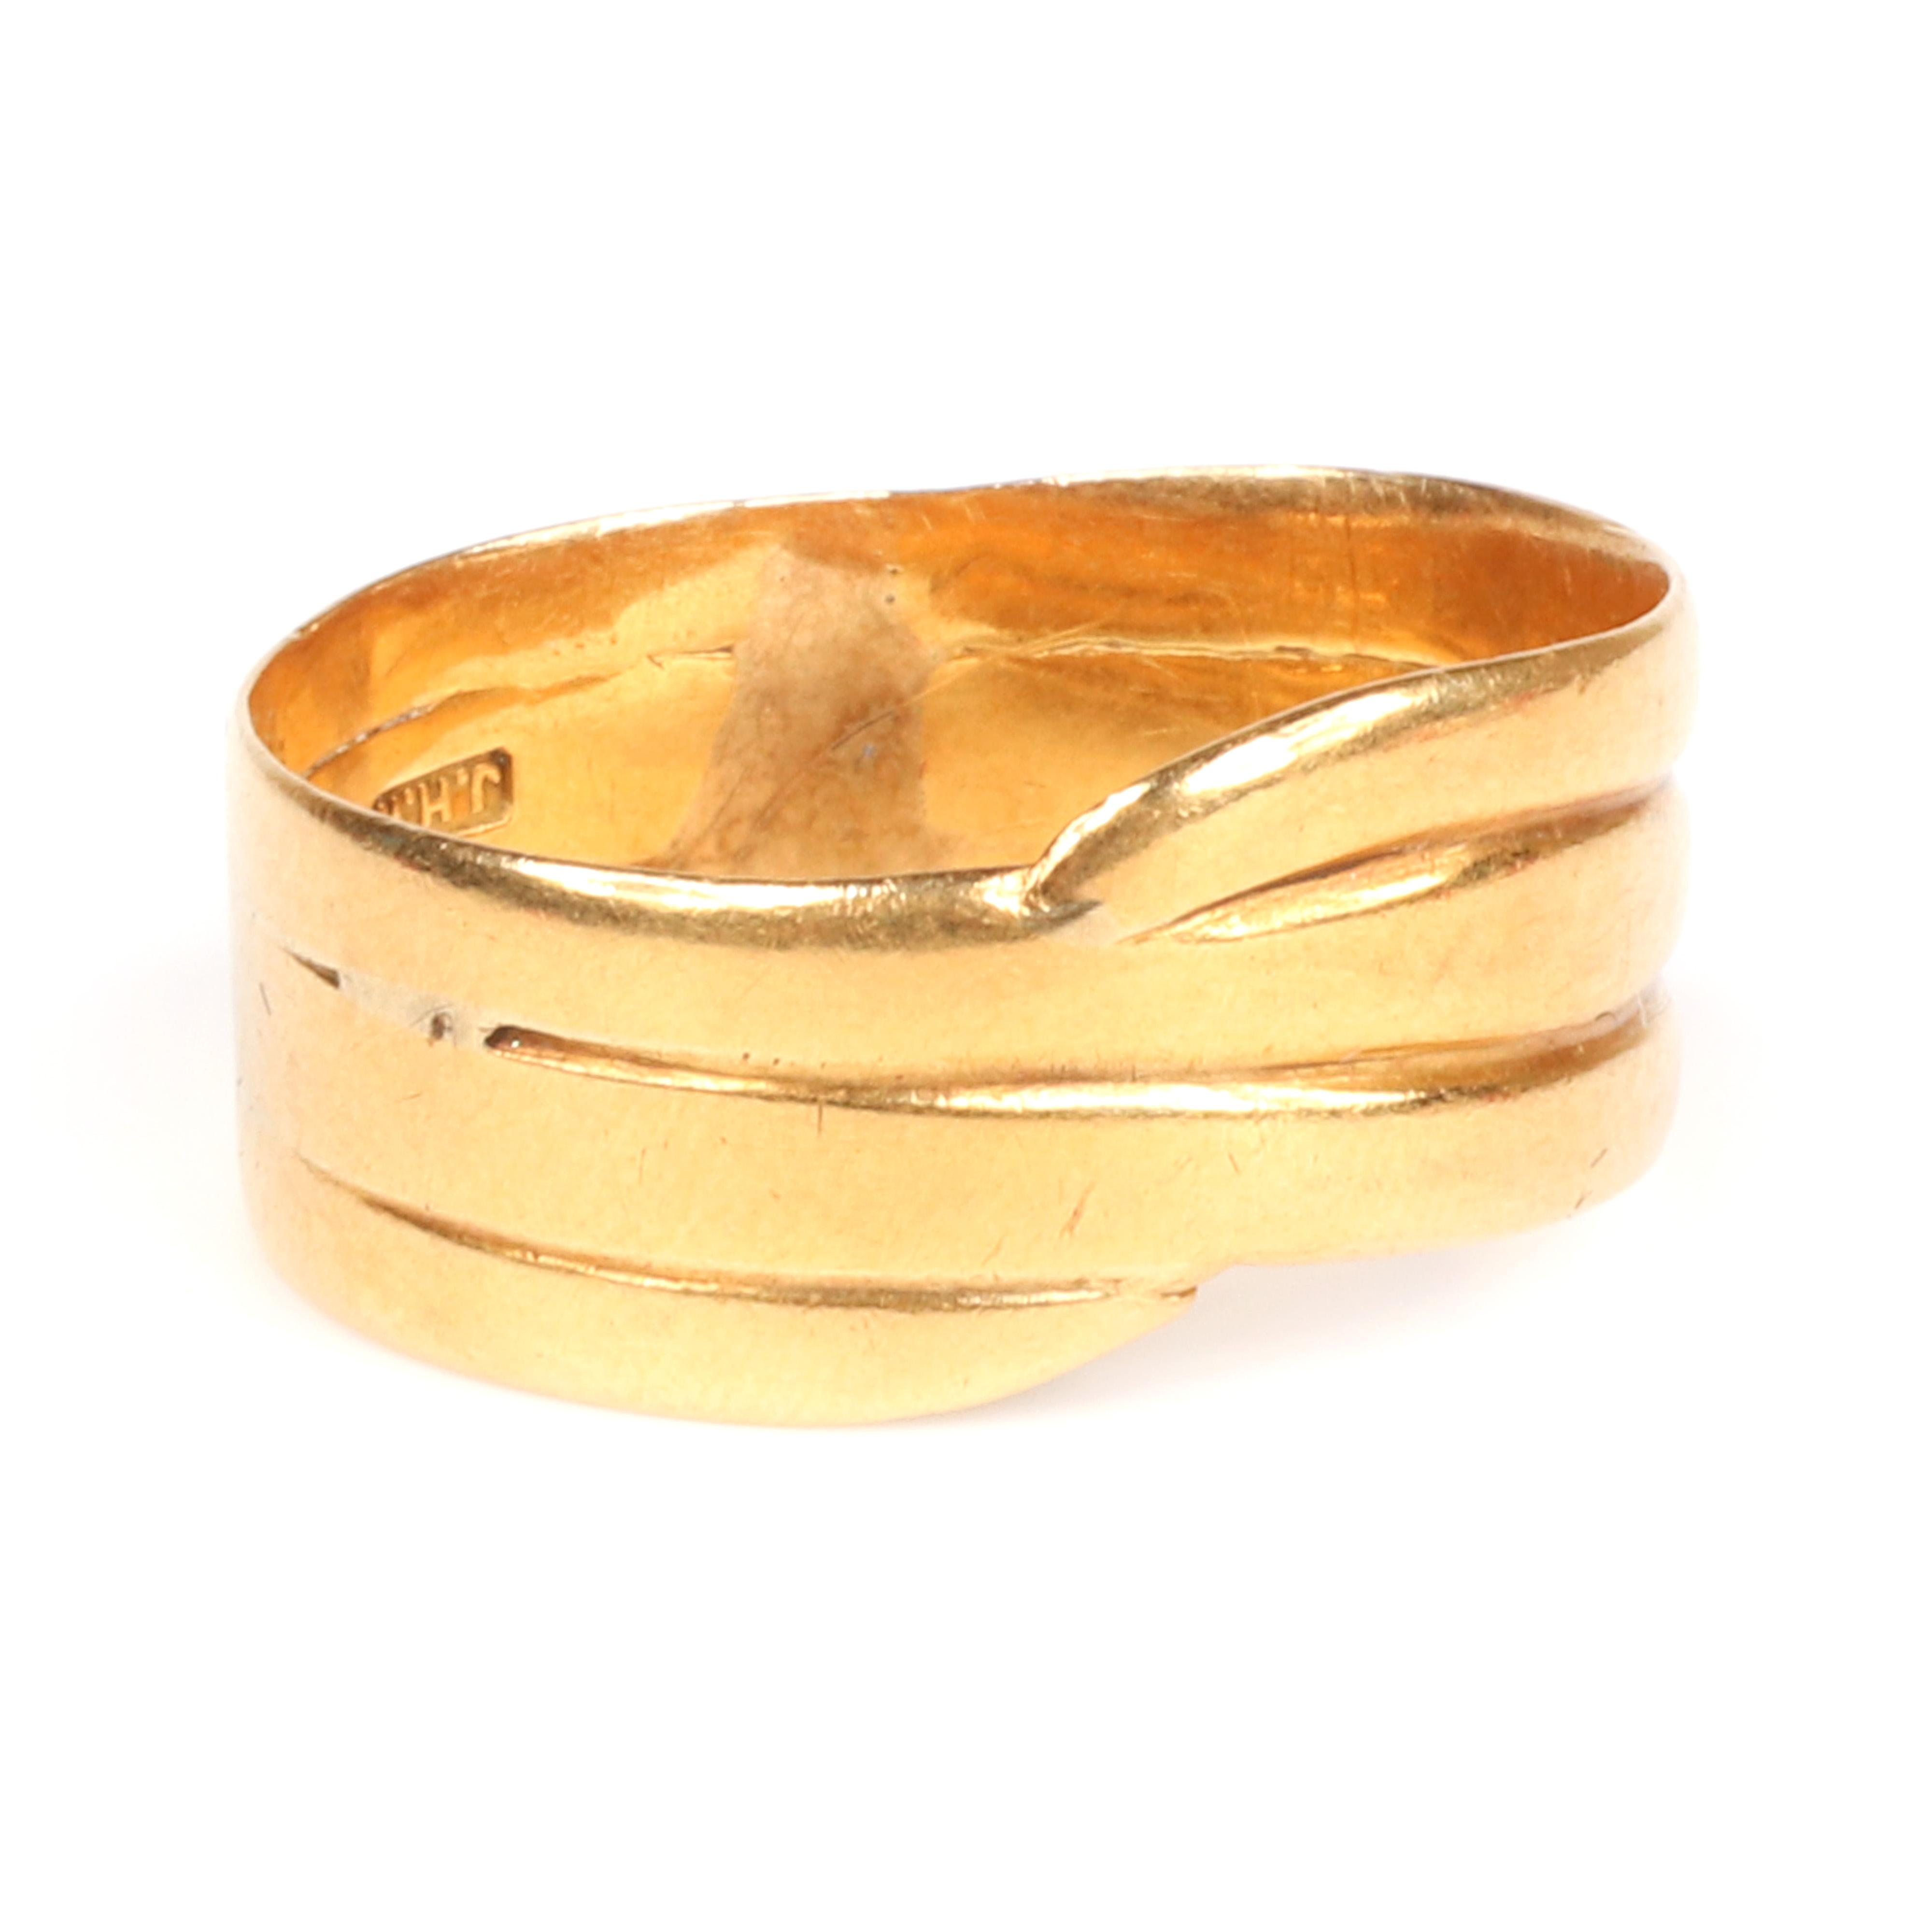 English 18K gold ring band, JHW jeweler with hallmarks, 2.50 dwt. RIng size 7 1/4